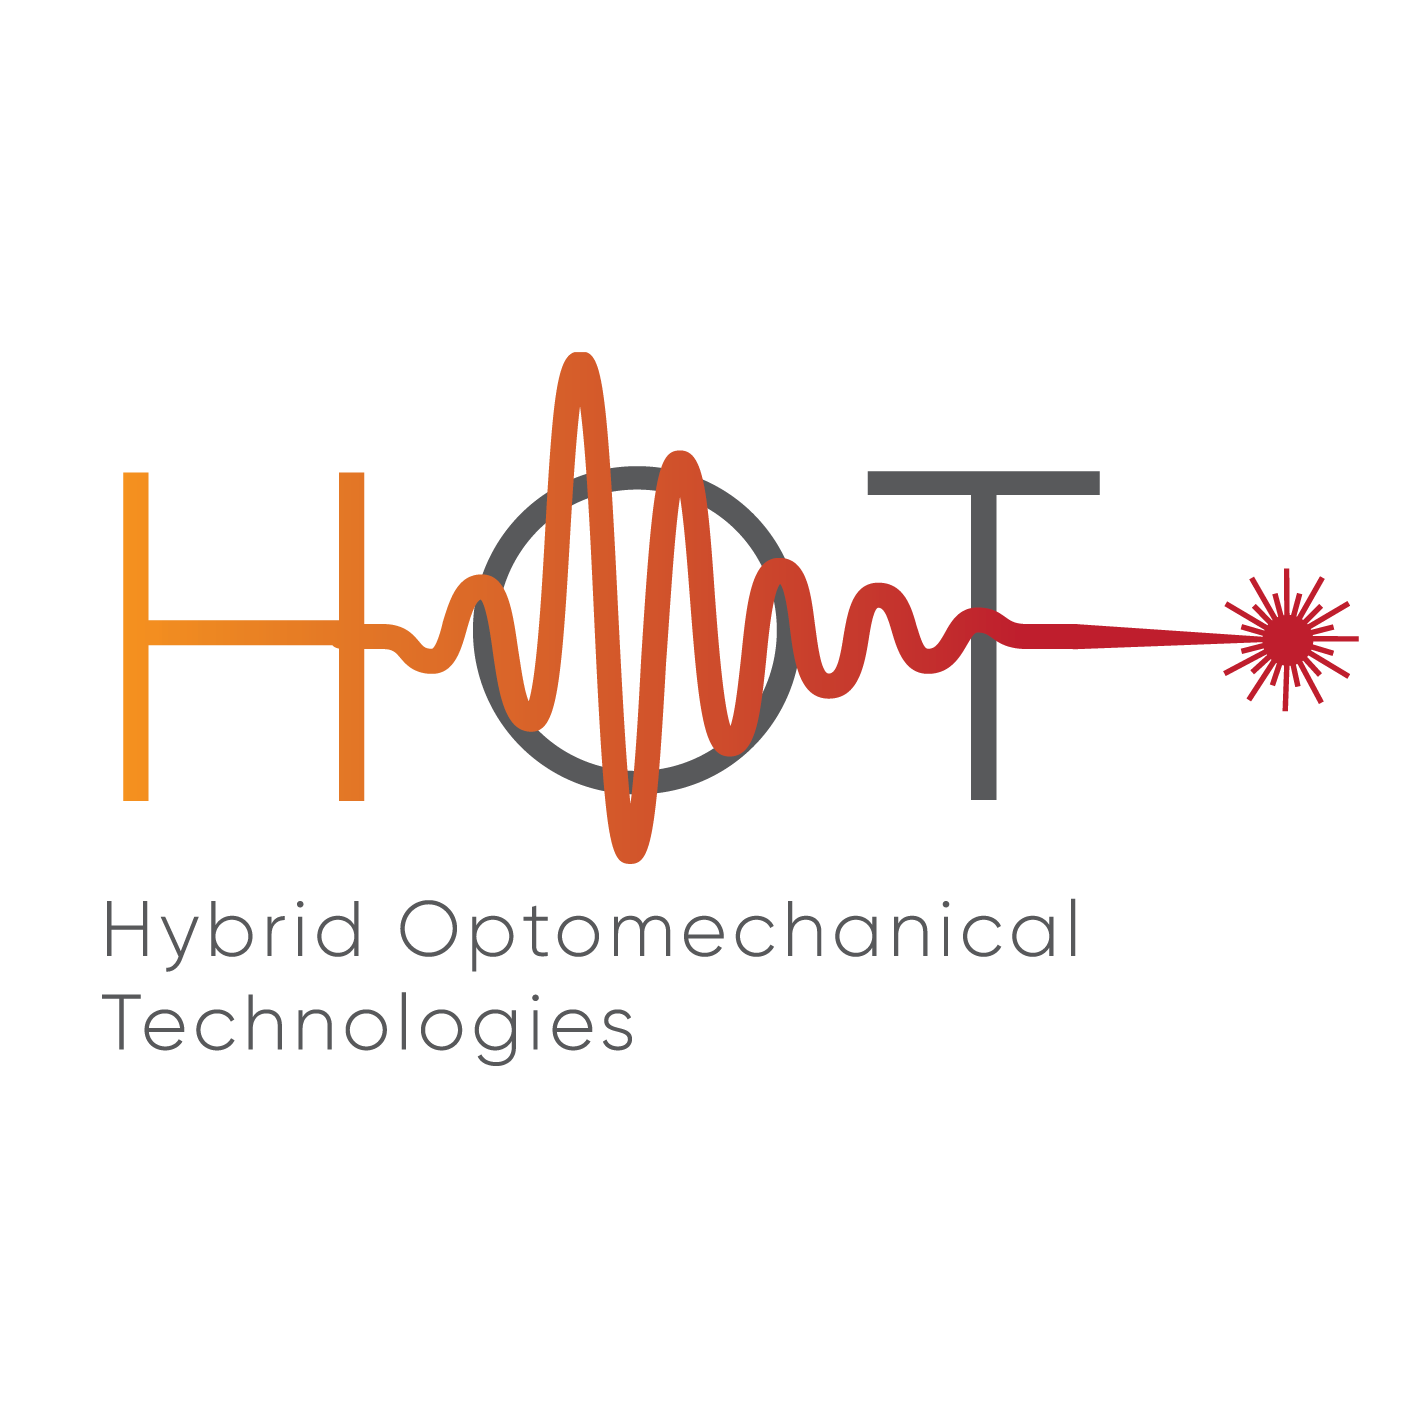 Hybrid Optomechanical Technologies (HOT)